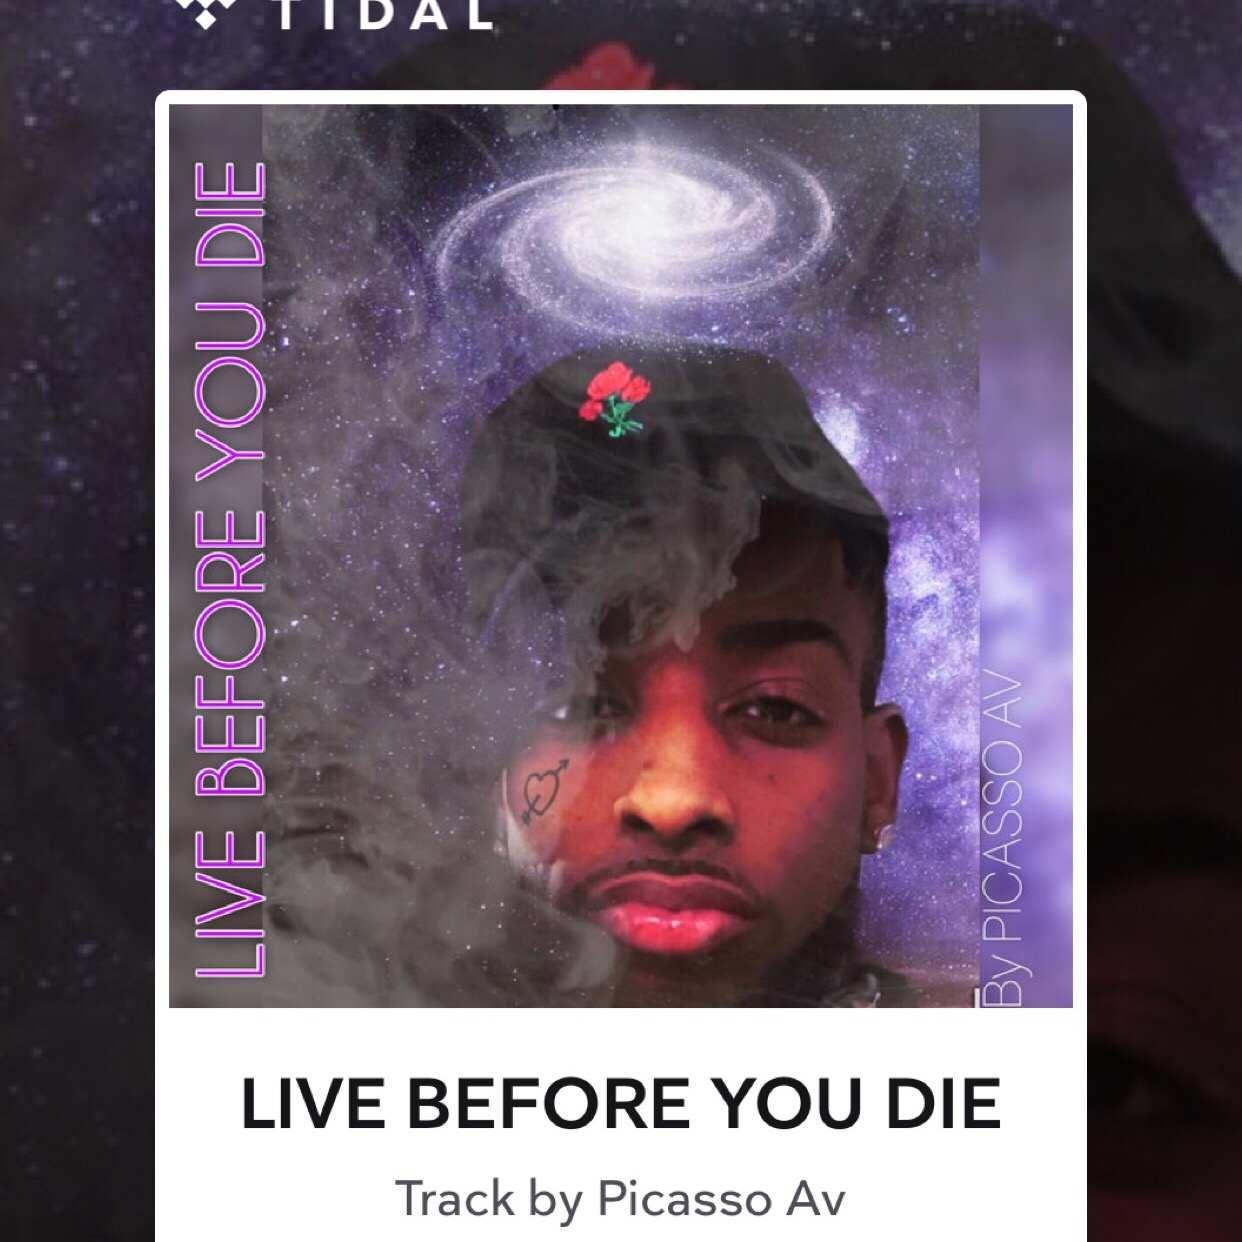 Live Before You Die on tidal